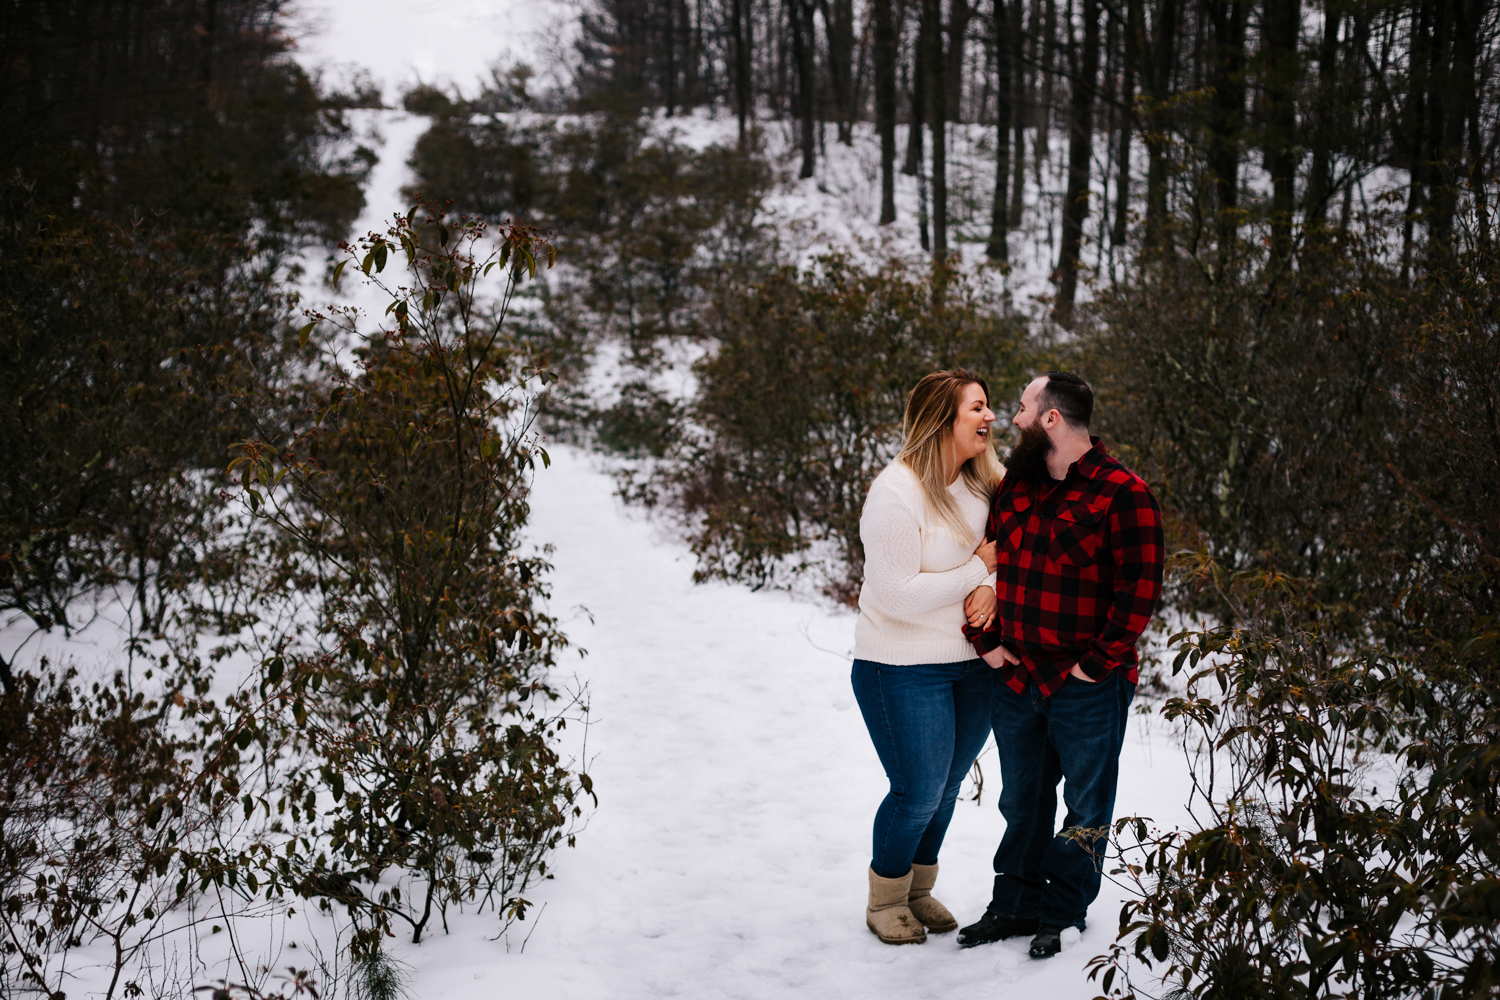 mount-holyoke-range-state-park-engagement-session-massachusetts-wedding-photographer-boston-new-england-elopement.jpg